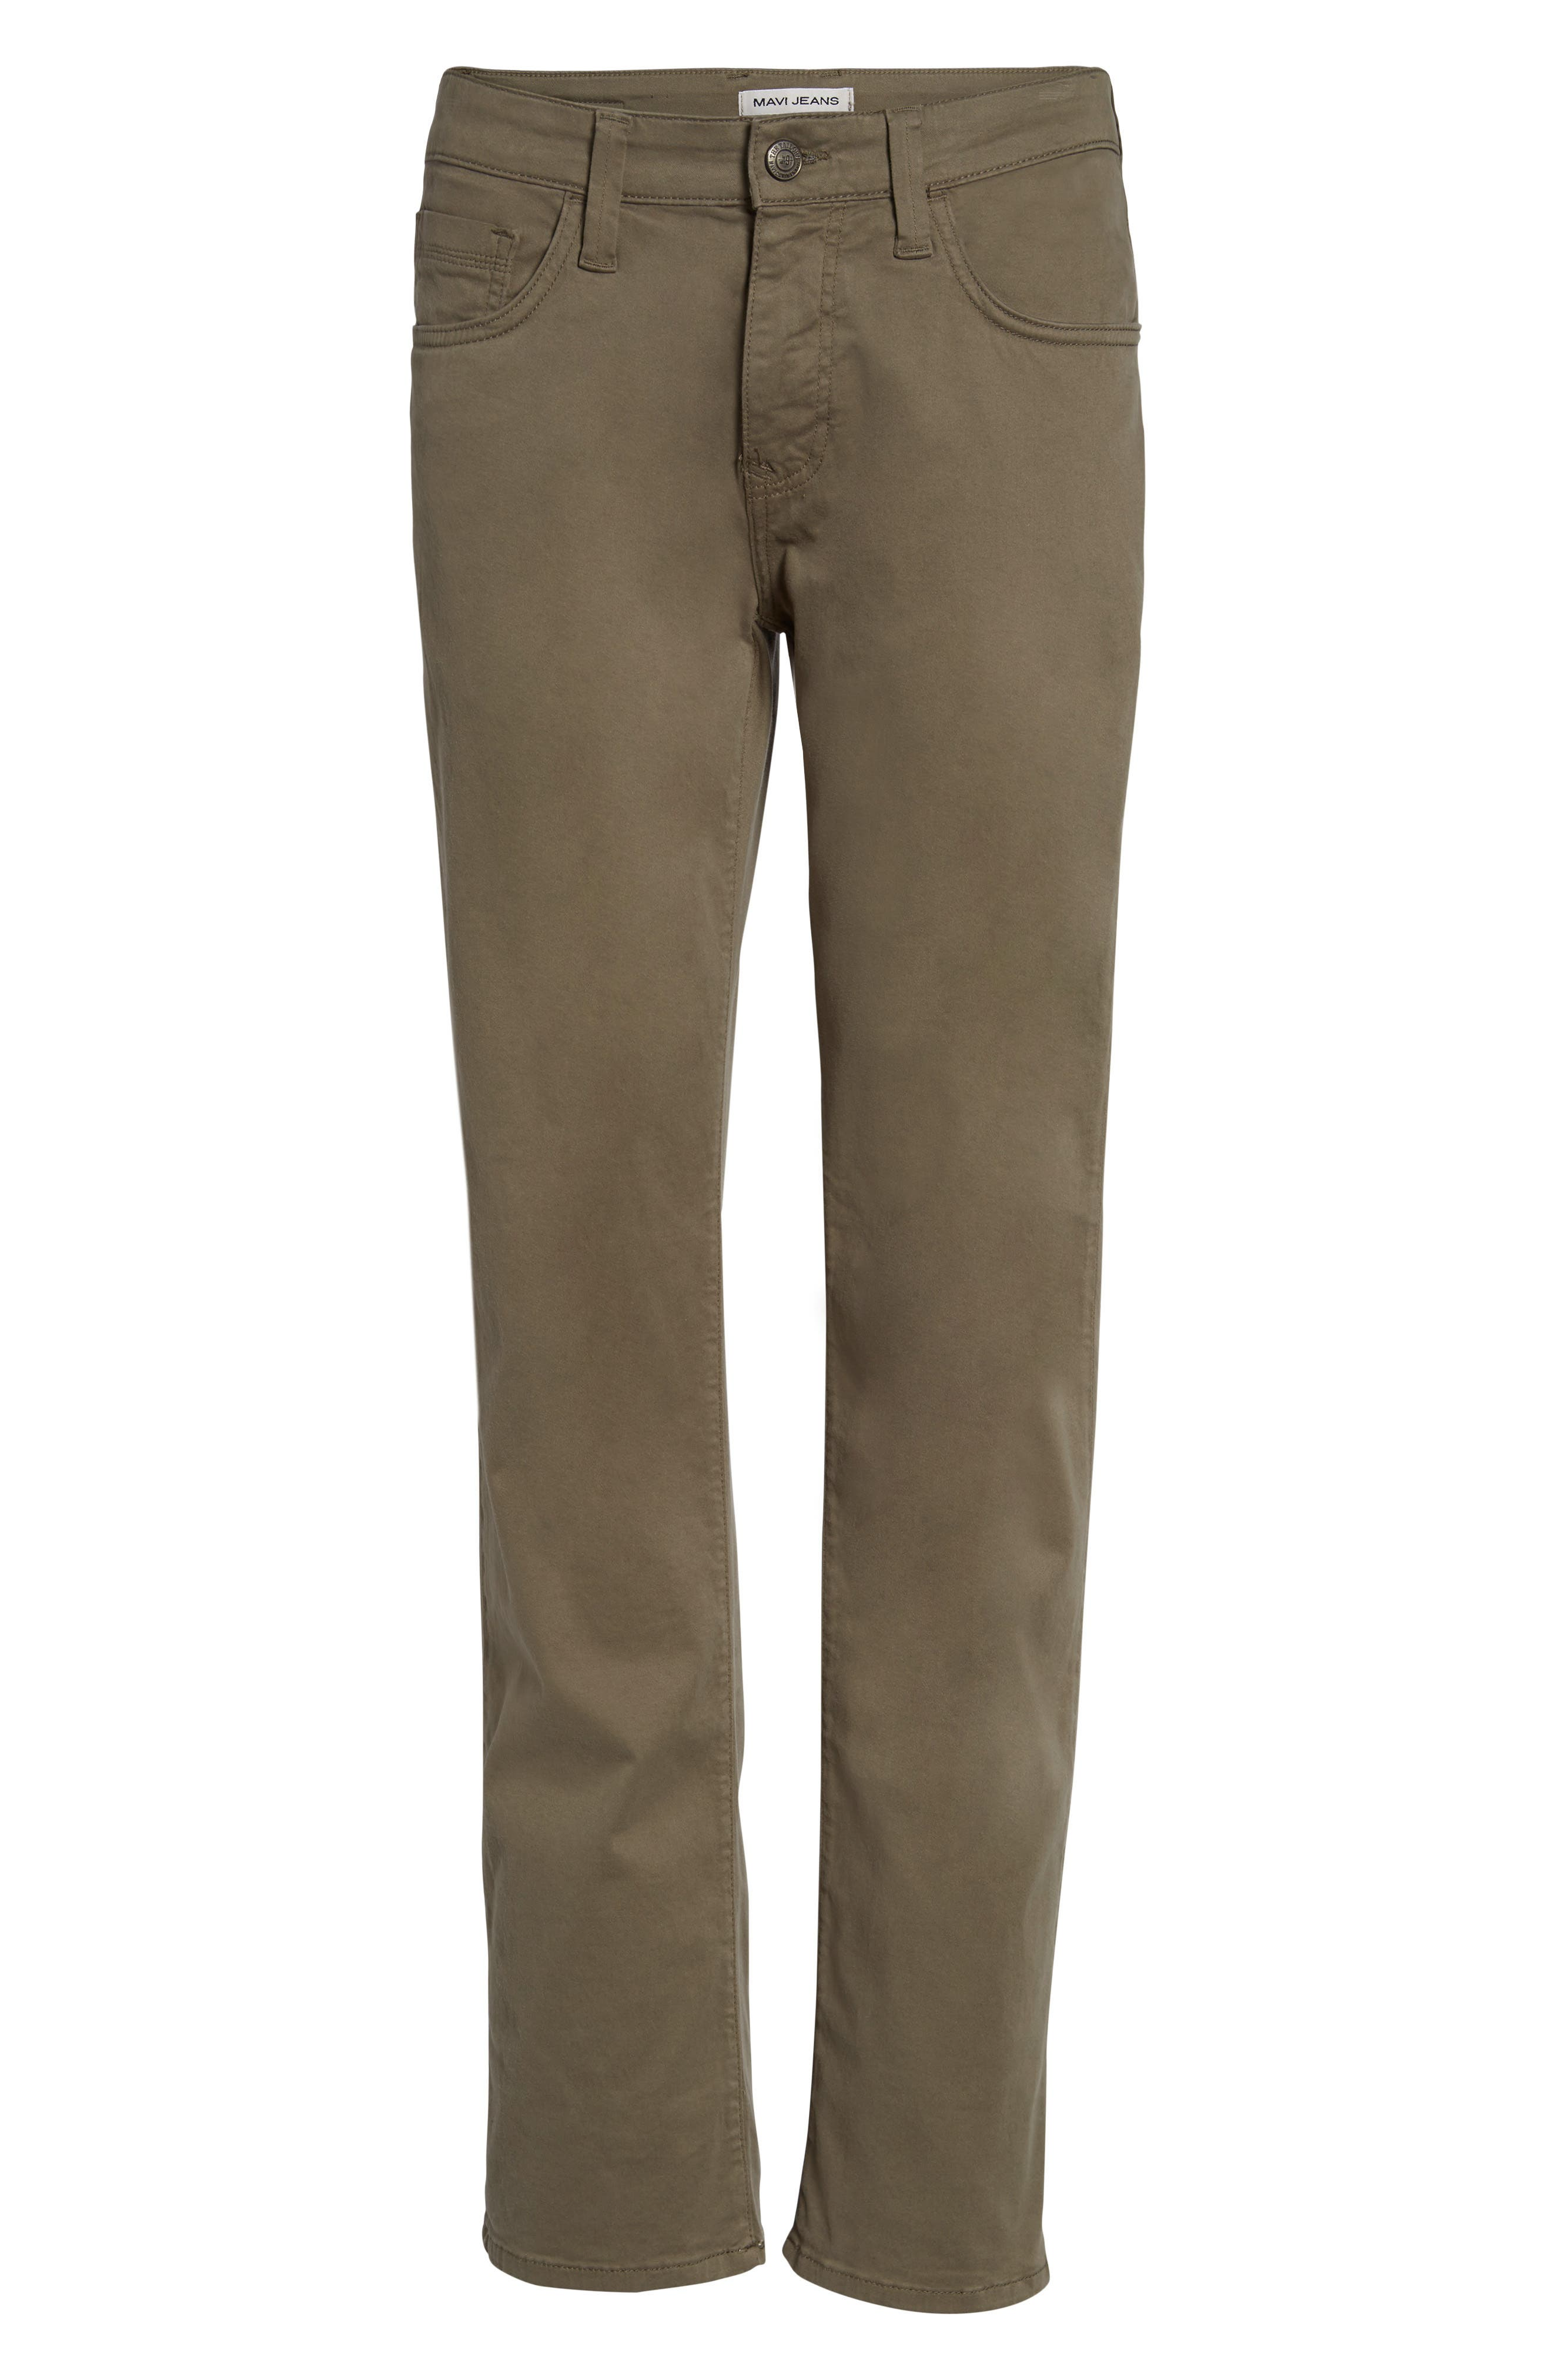 Zach Straight Fit Twill Pants,                             Alternate thumbnail 6, color,                             Dusty Olive Twill